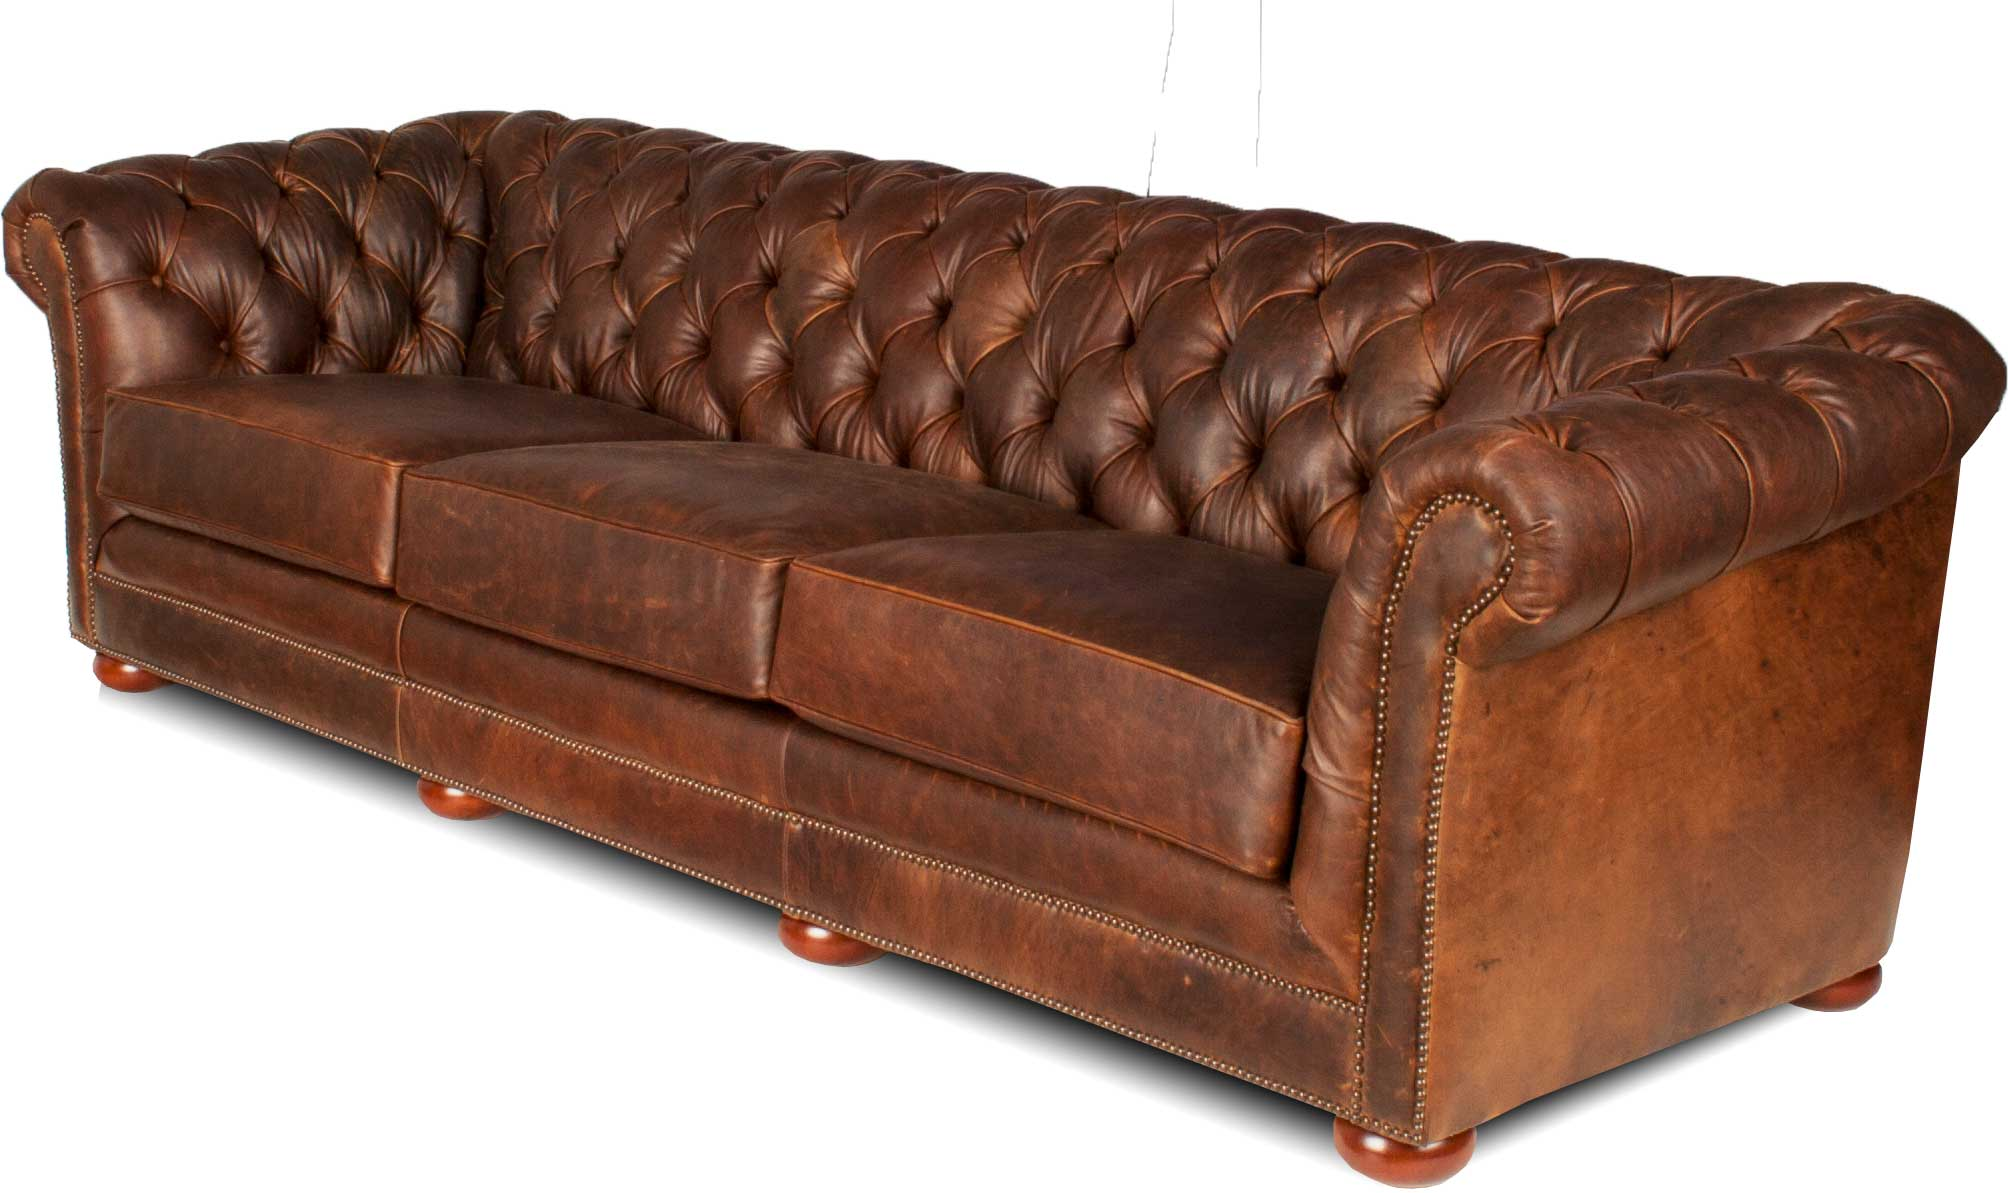 Executive Leather Furniture